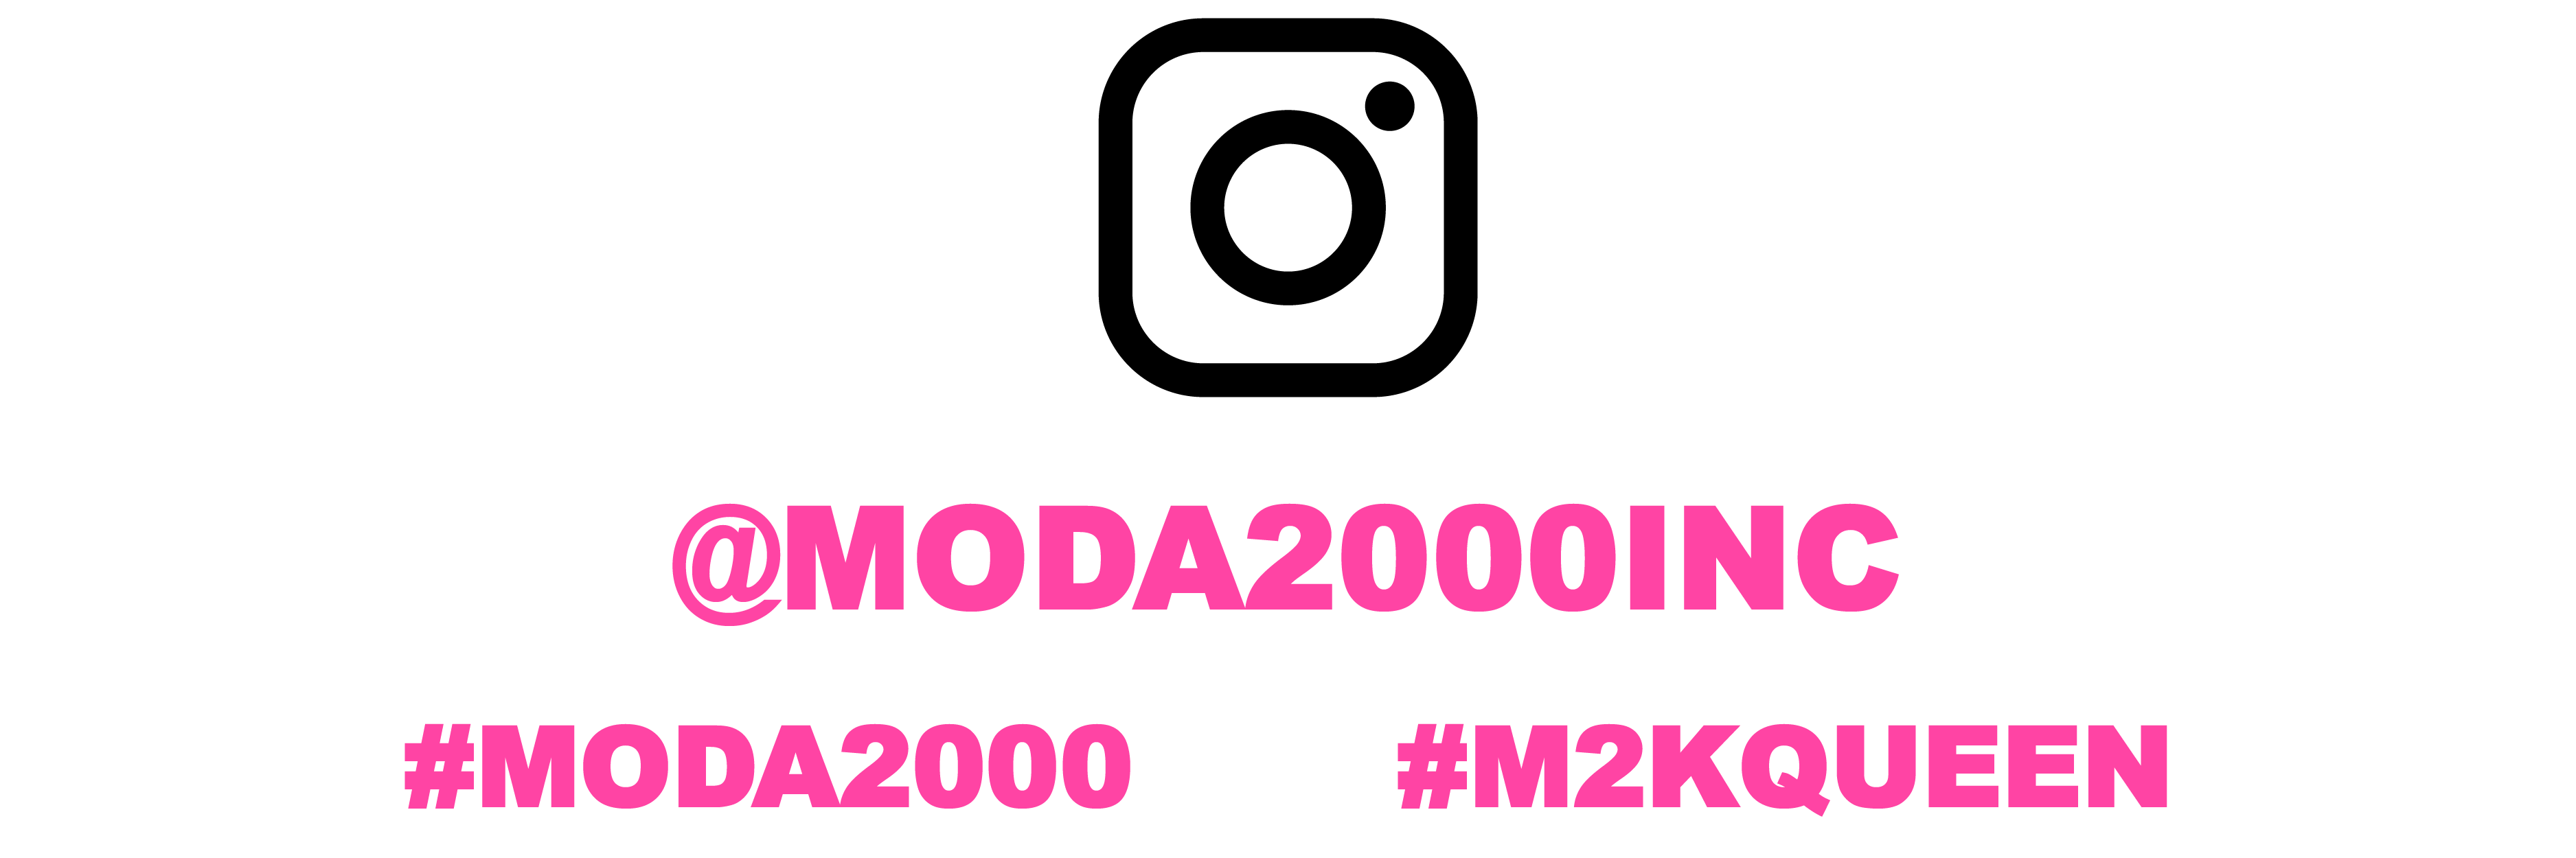 Moda 2000 Instagram Faves